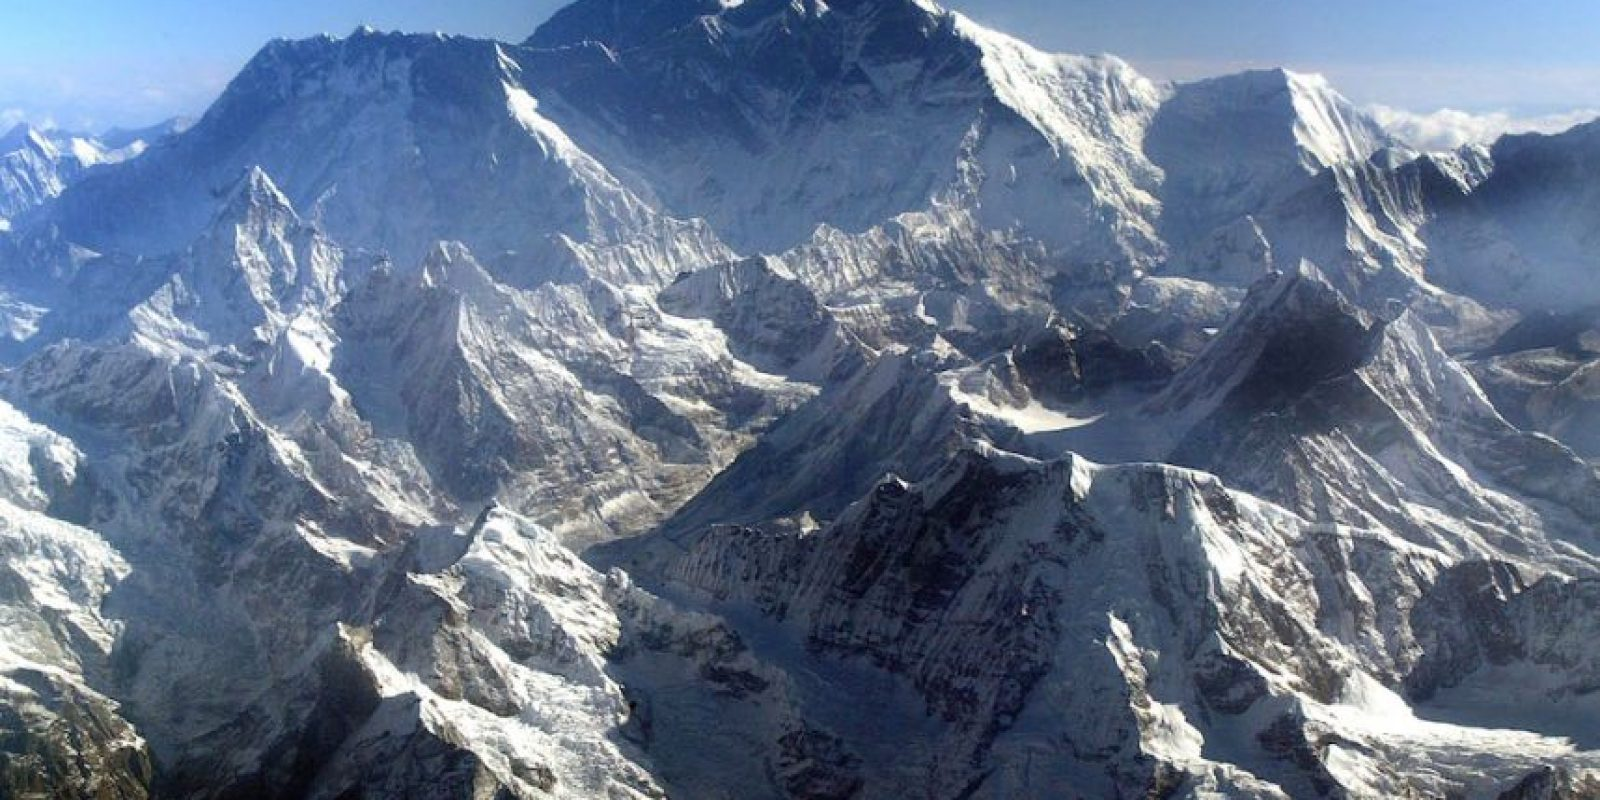 Monte Everest crea polémica entre geólogos. Foto: Getty Images